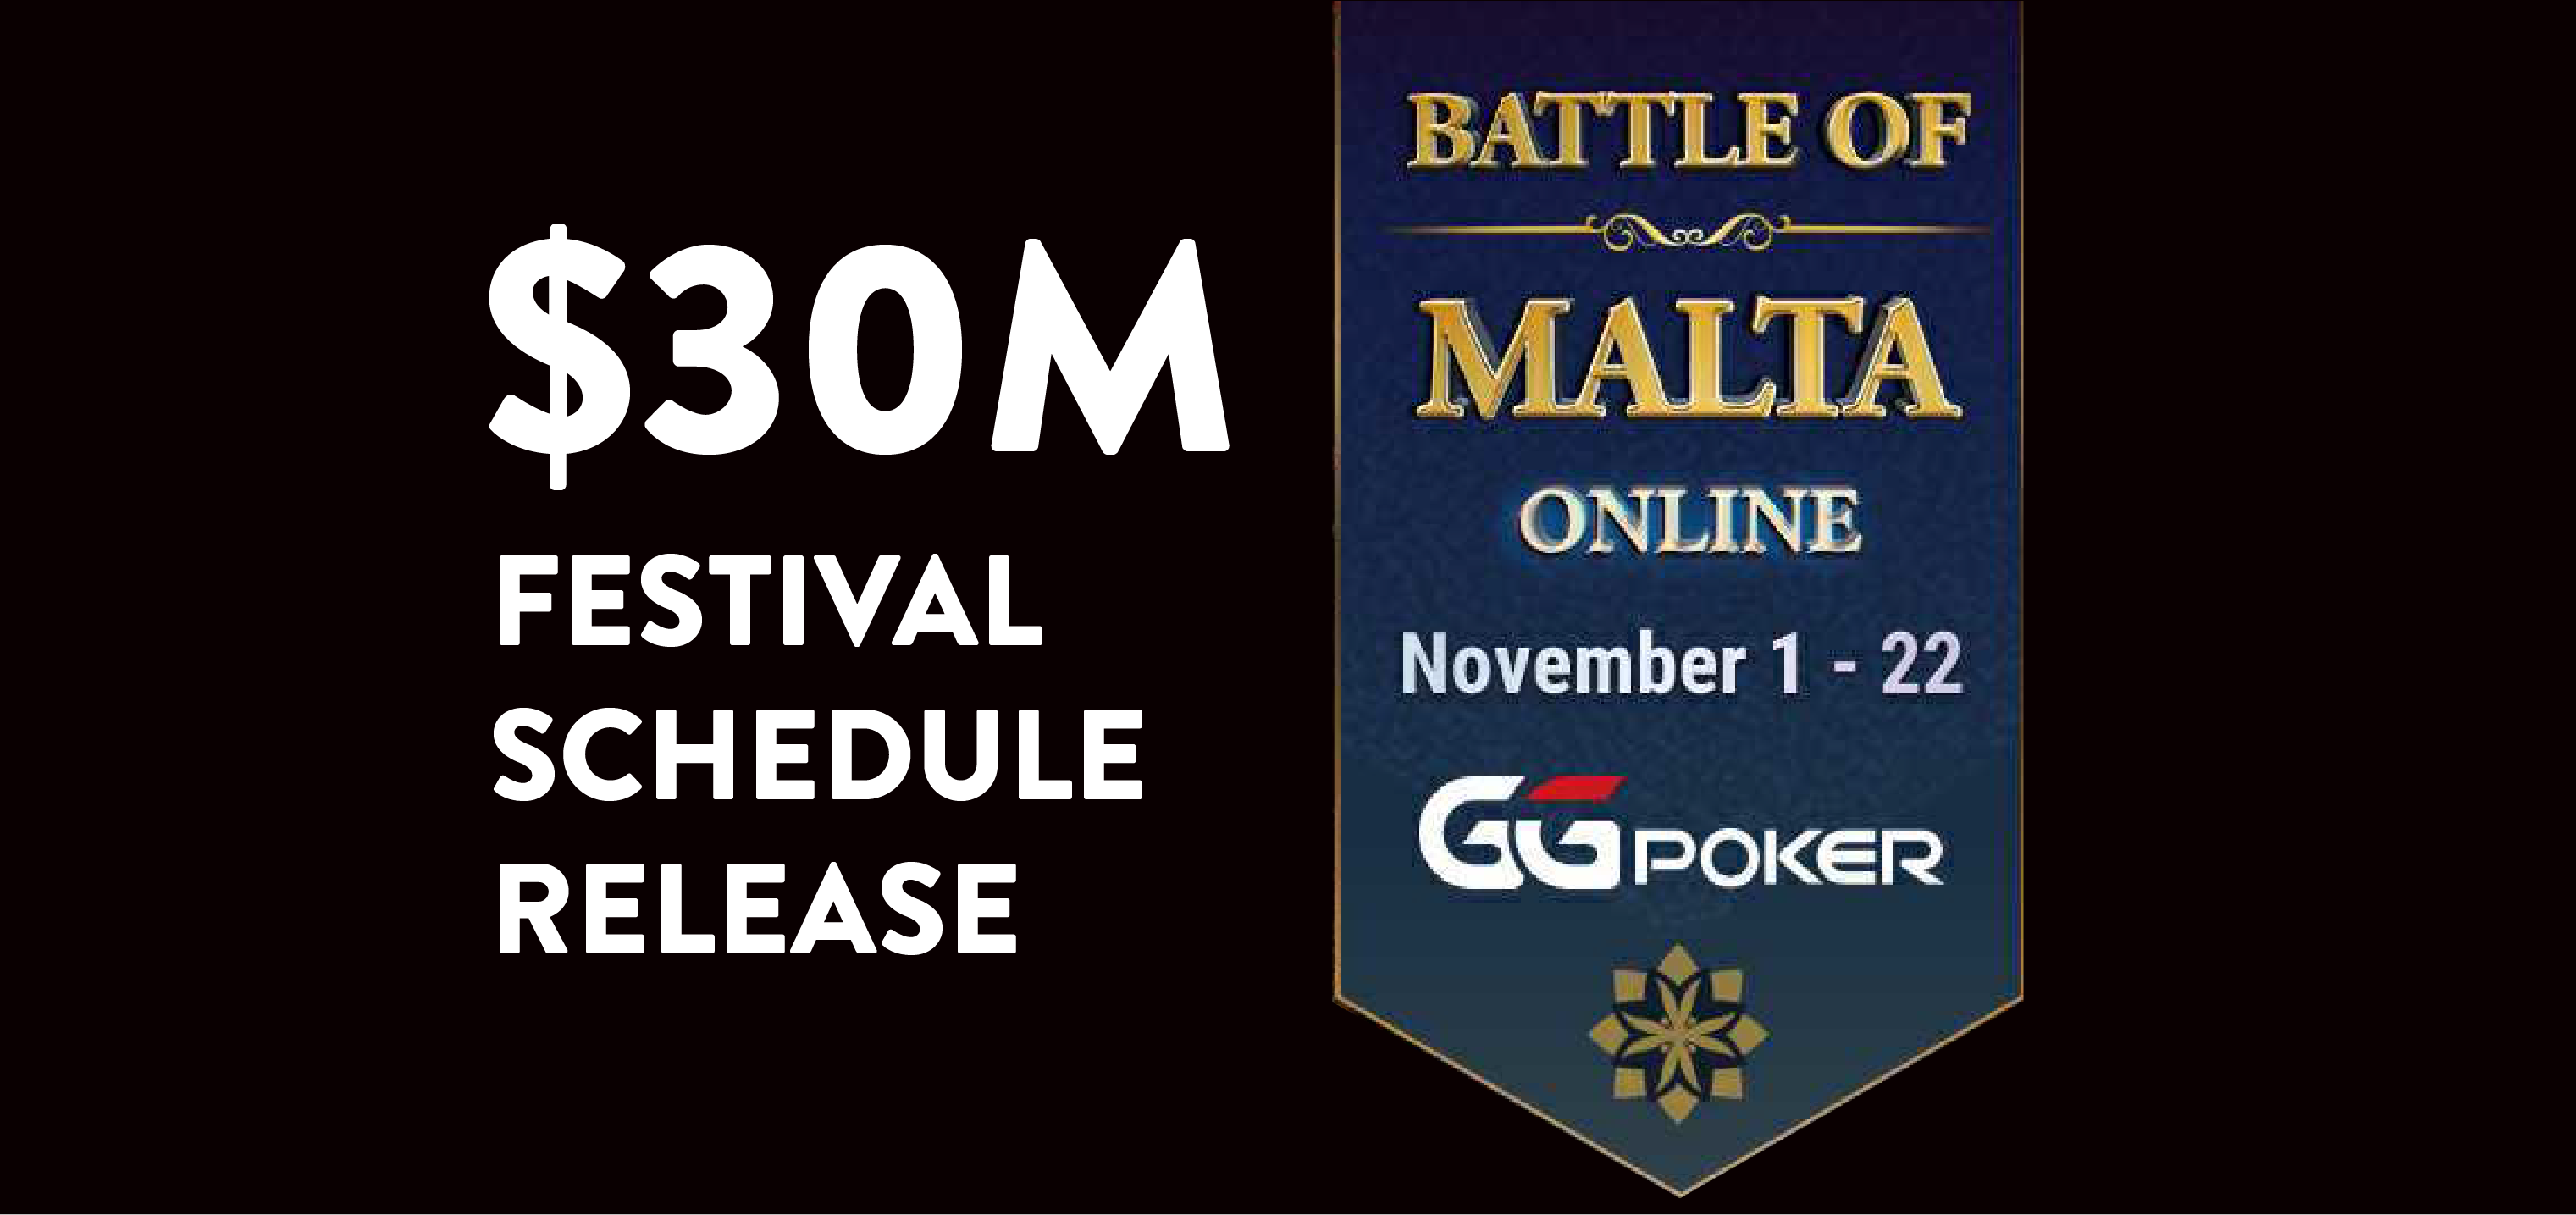 30 M Festival Schedule Release for the Battle of Malta 2020